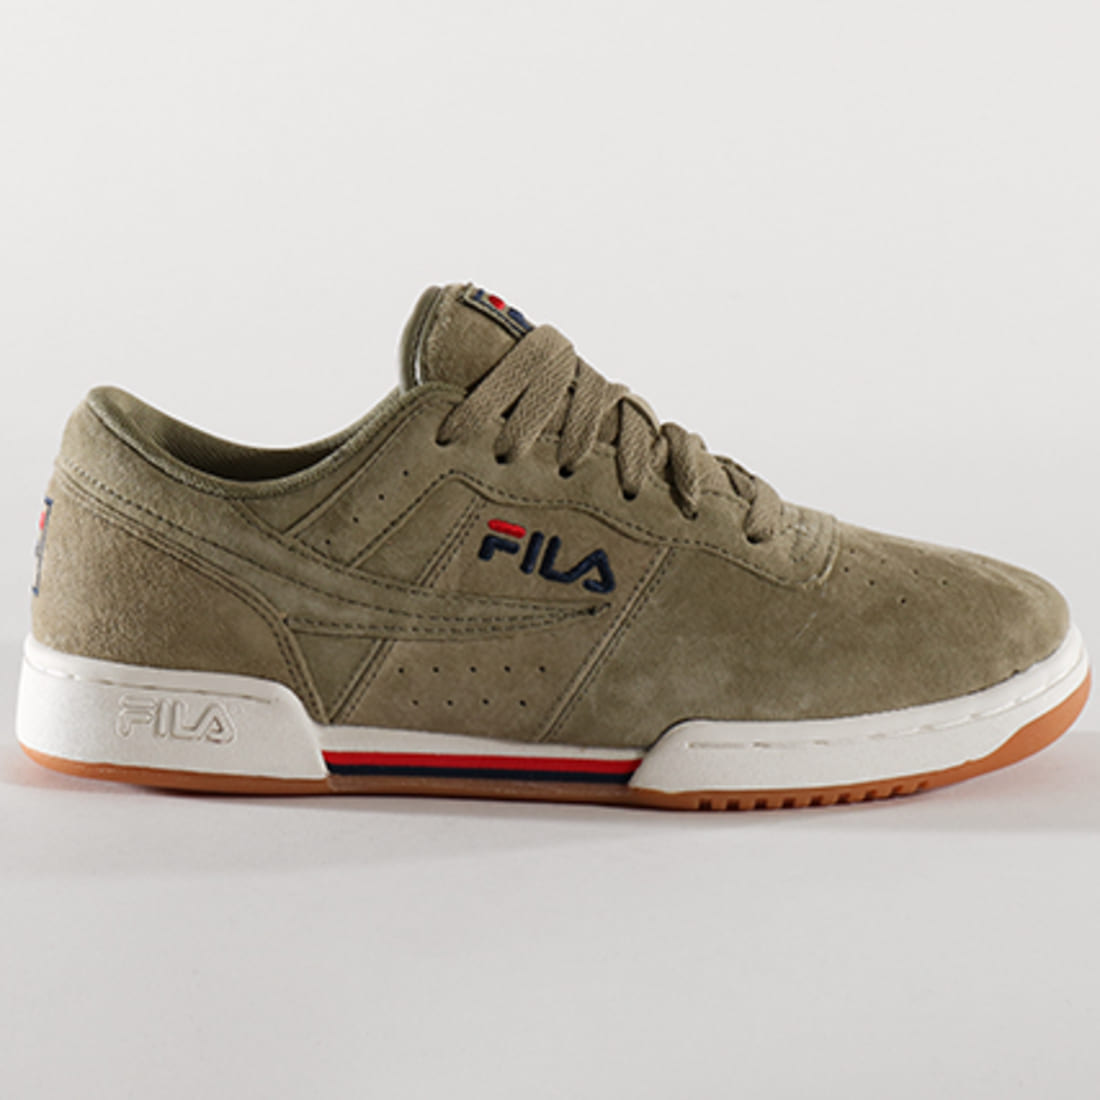 Fila Baskets Original Fitness 1010259 50K Olivine